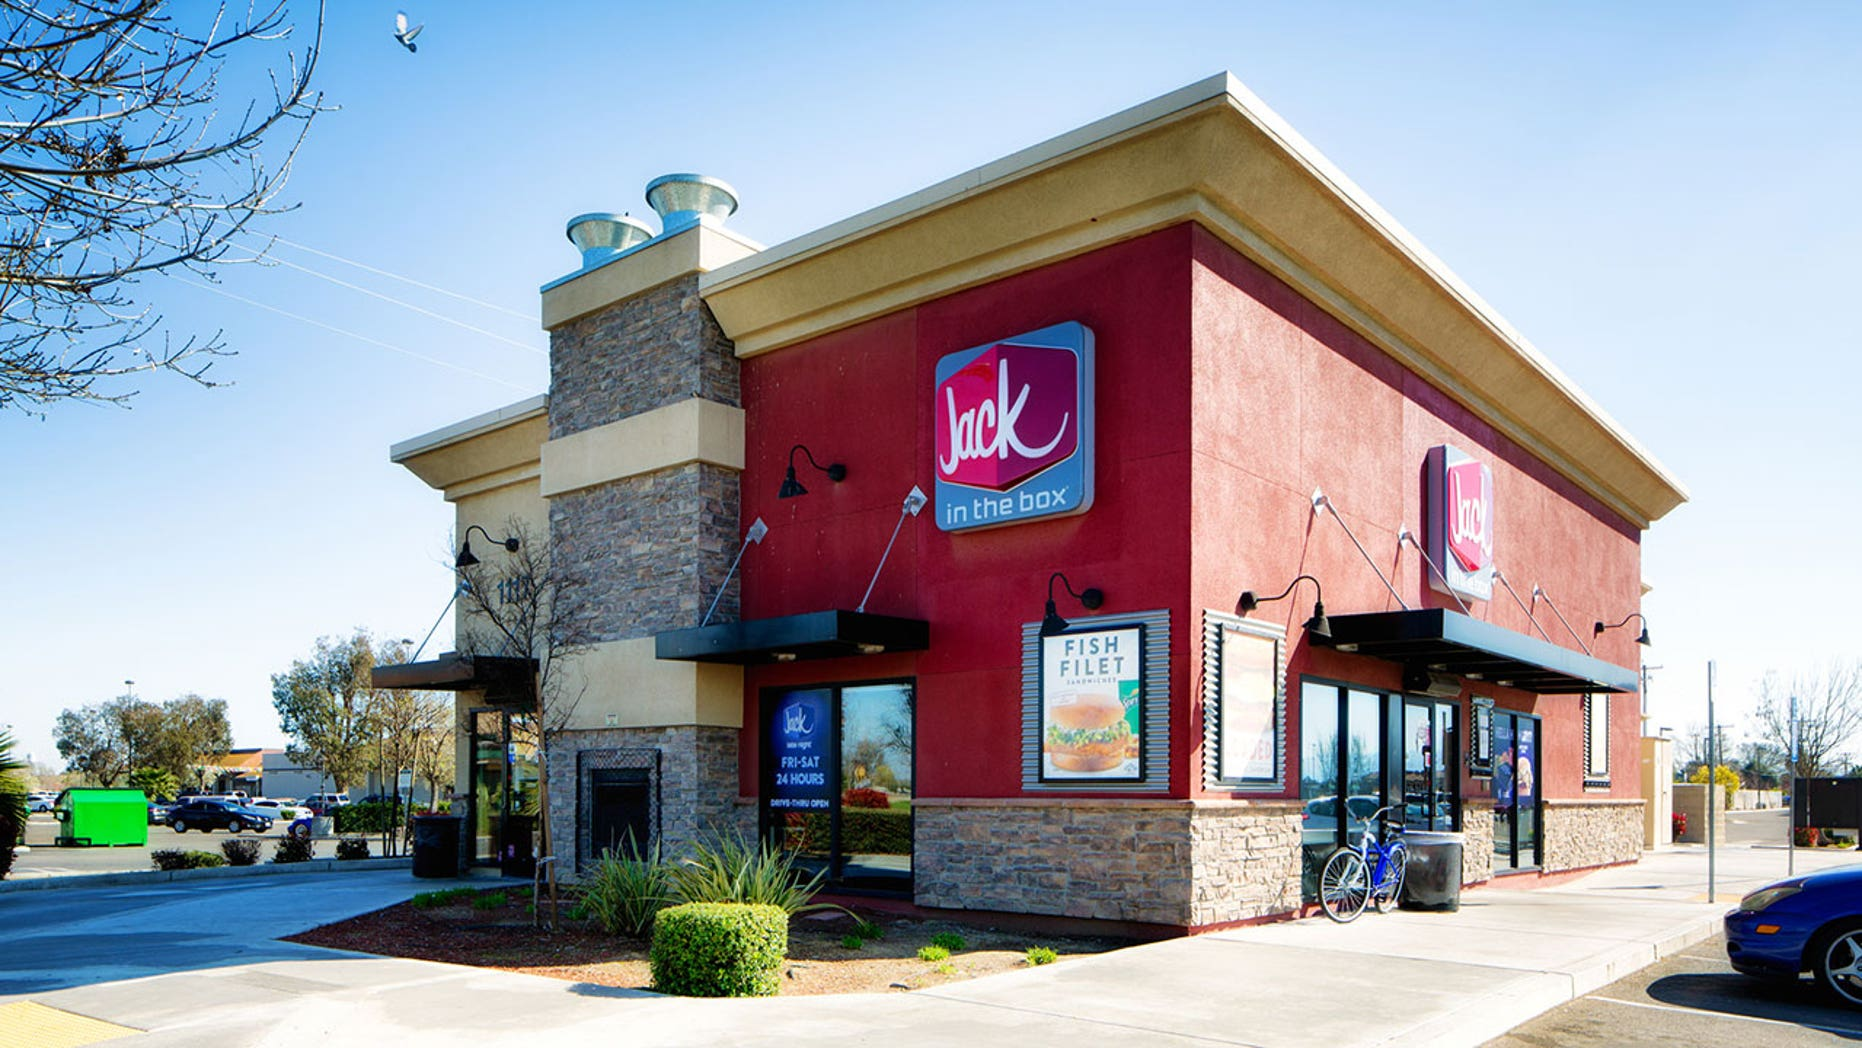 Three minors reportedly became enraged when their Jack in the Box order got screwed up.